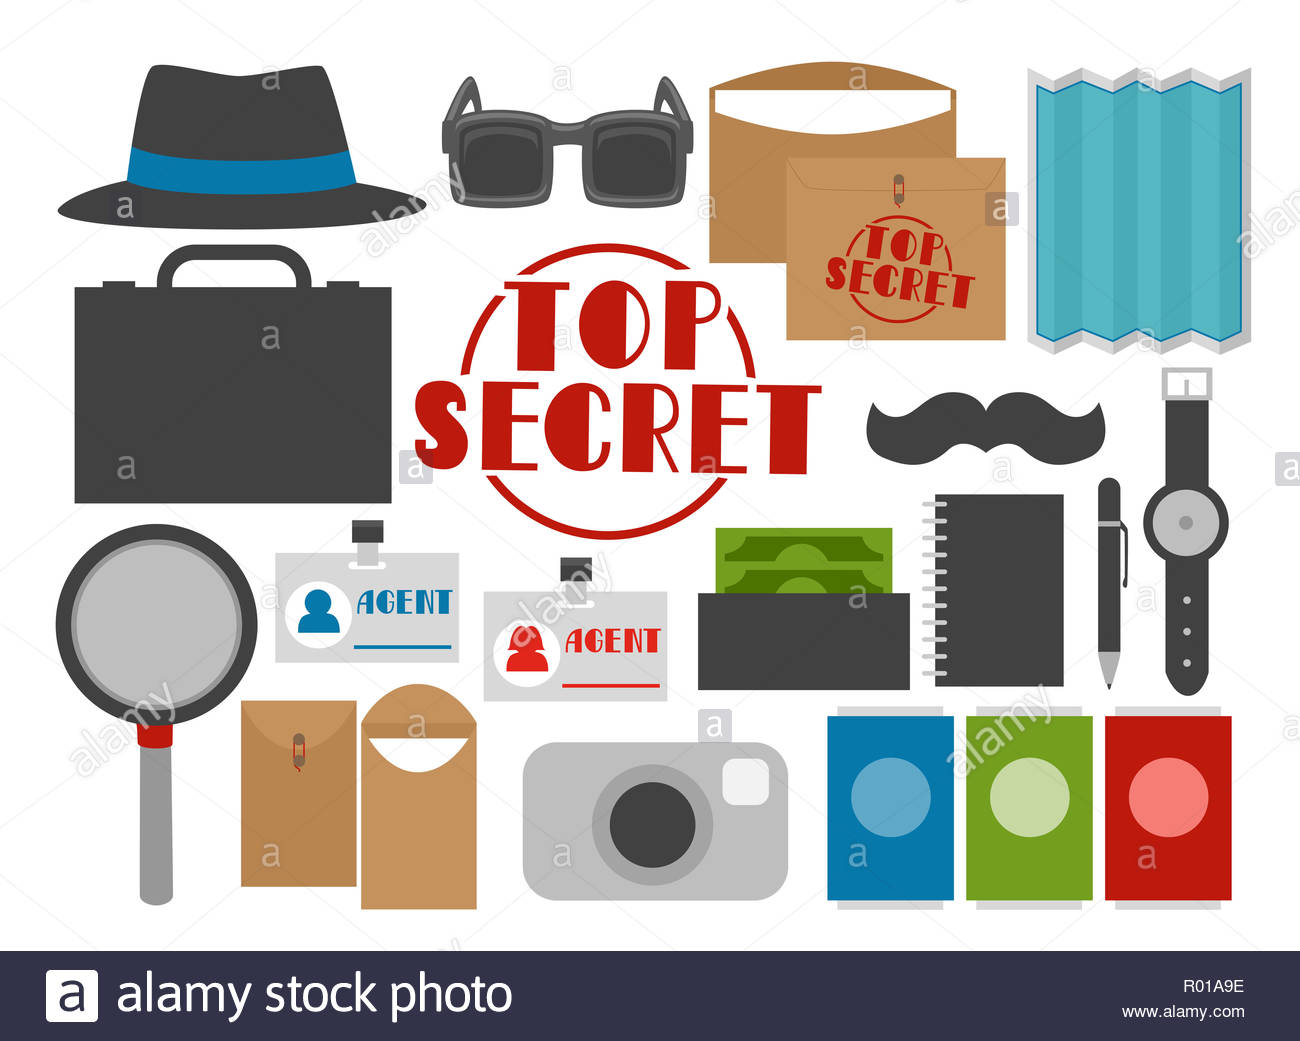 Illustration of Secret Agent Party Elements like Hat.